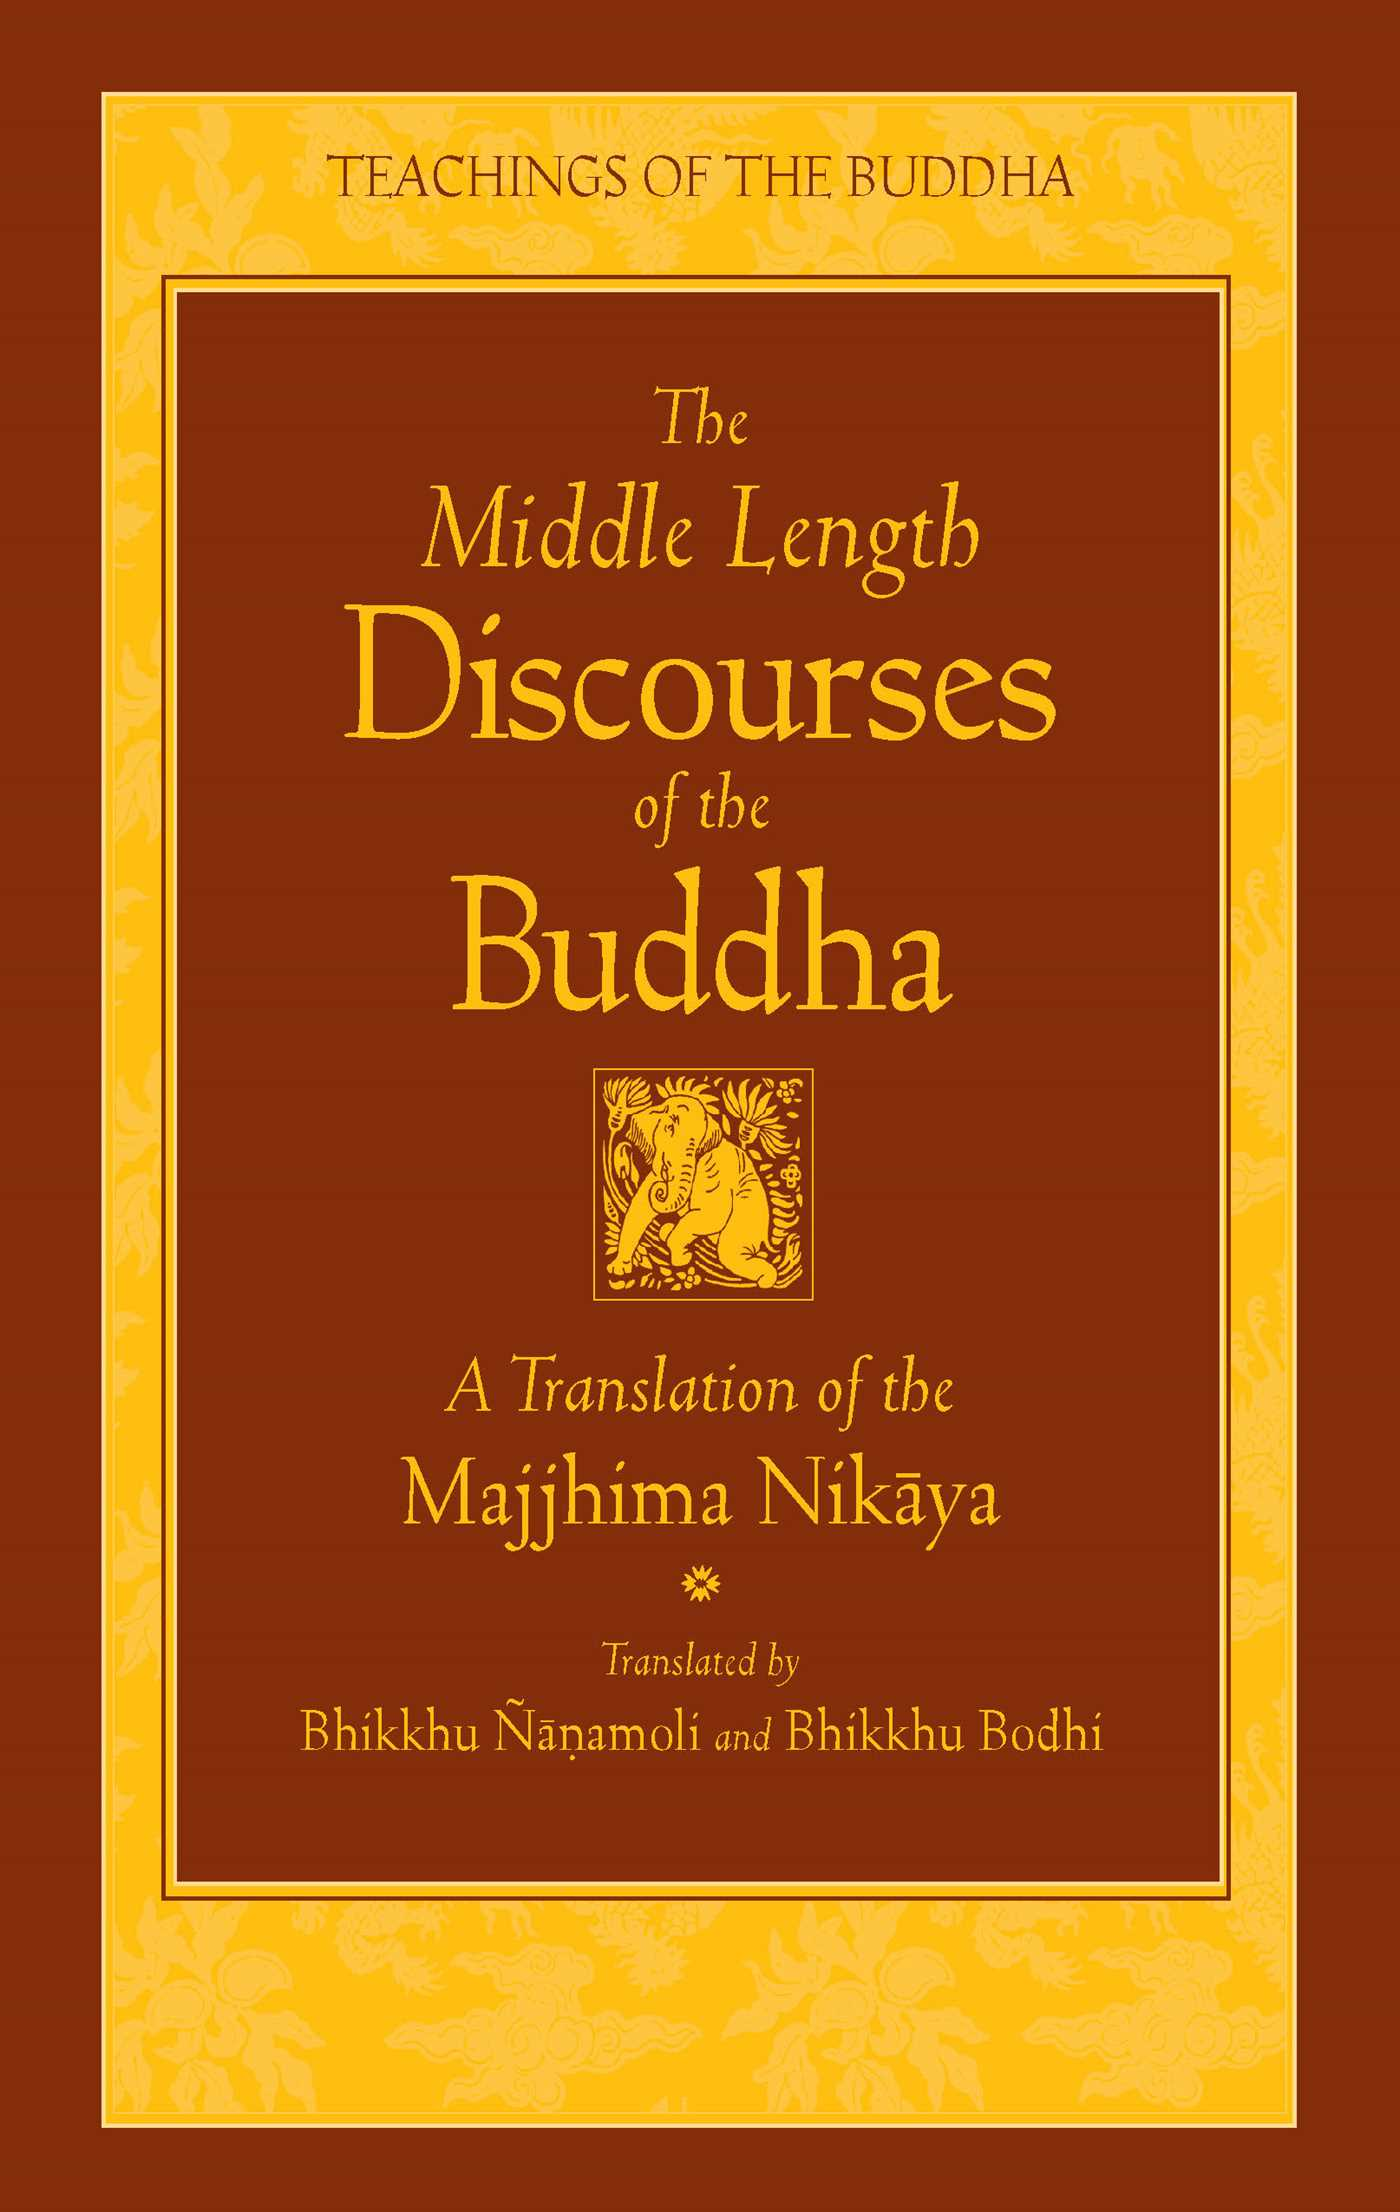 The-middle-length-discourses-of-the-buddha-9780861710720_hr